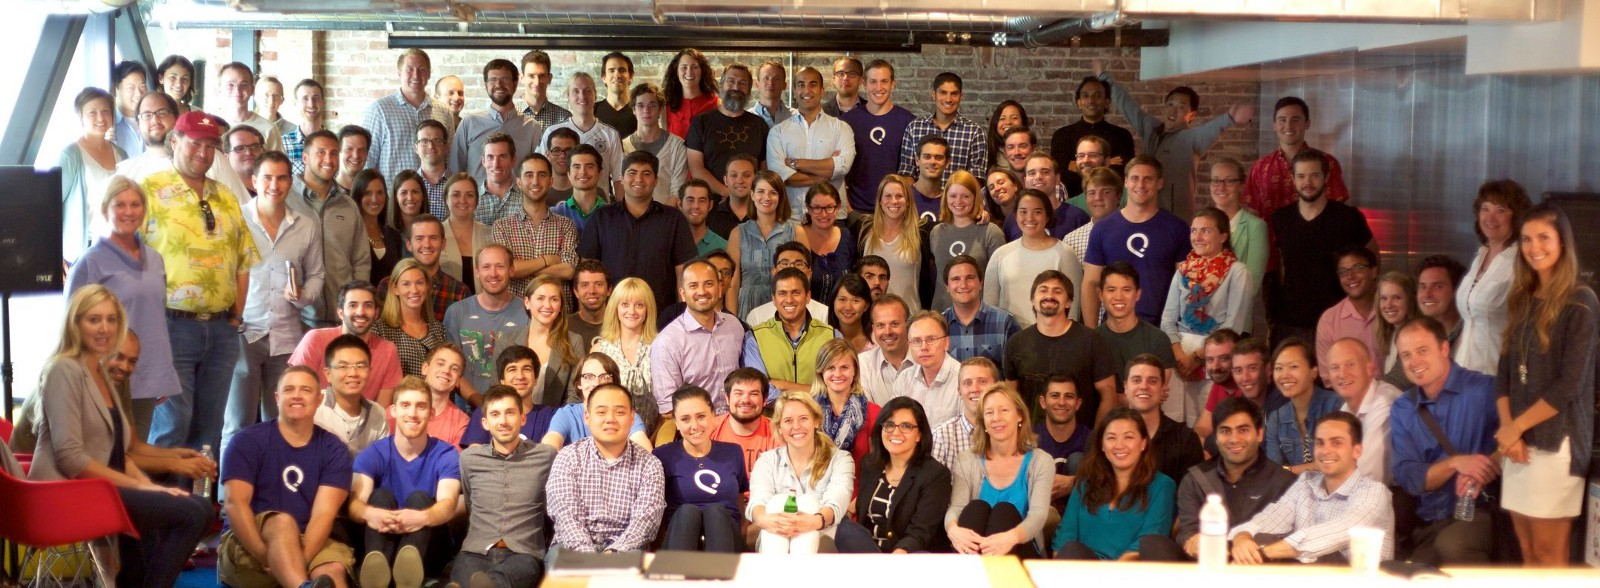 The team, circa 2014, when they were acquired by Salesforce.